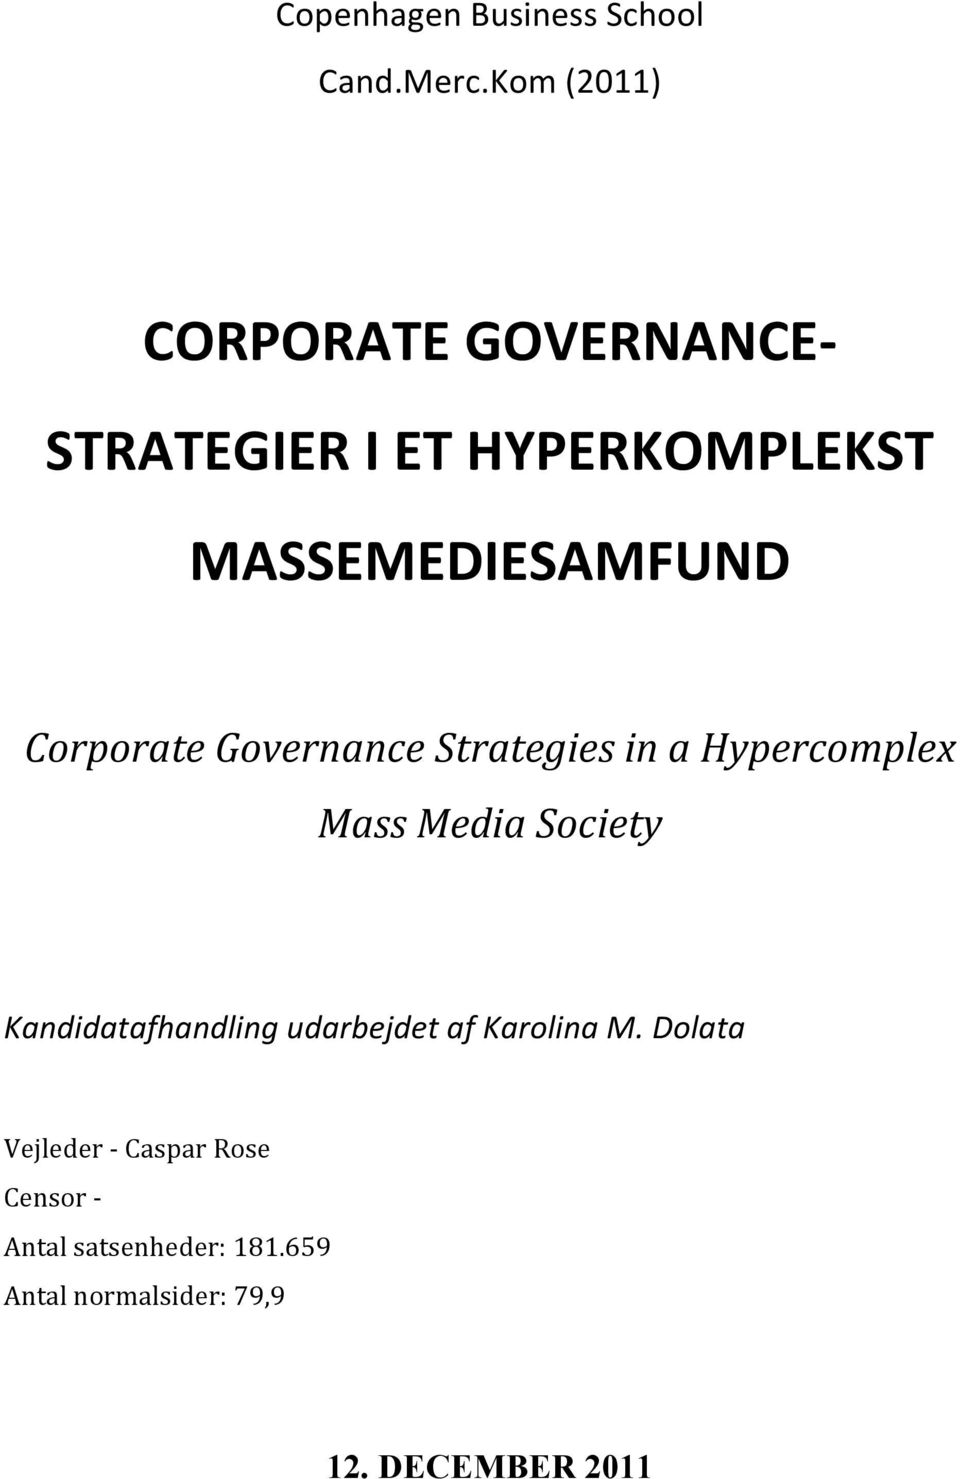 Corporate Governance Strategies in a Hypercomplex Mass Media Society